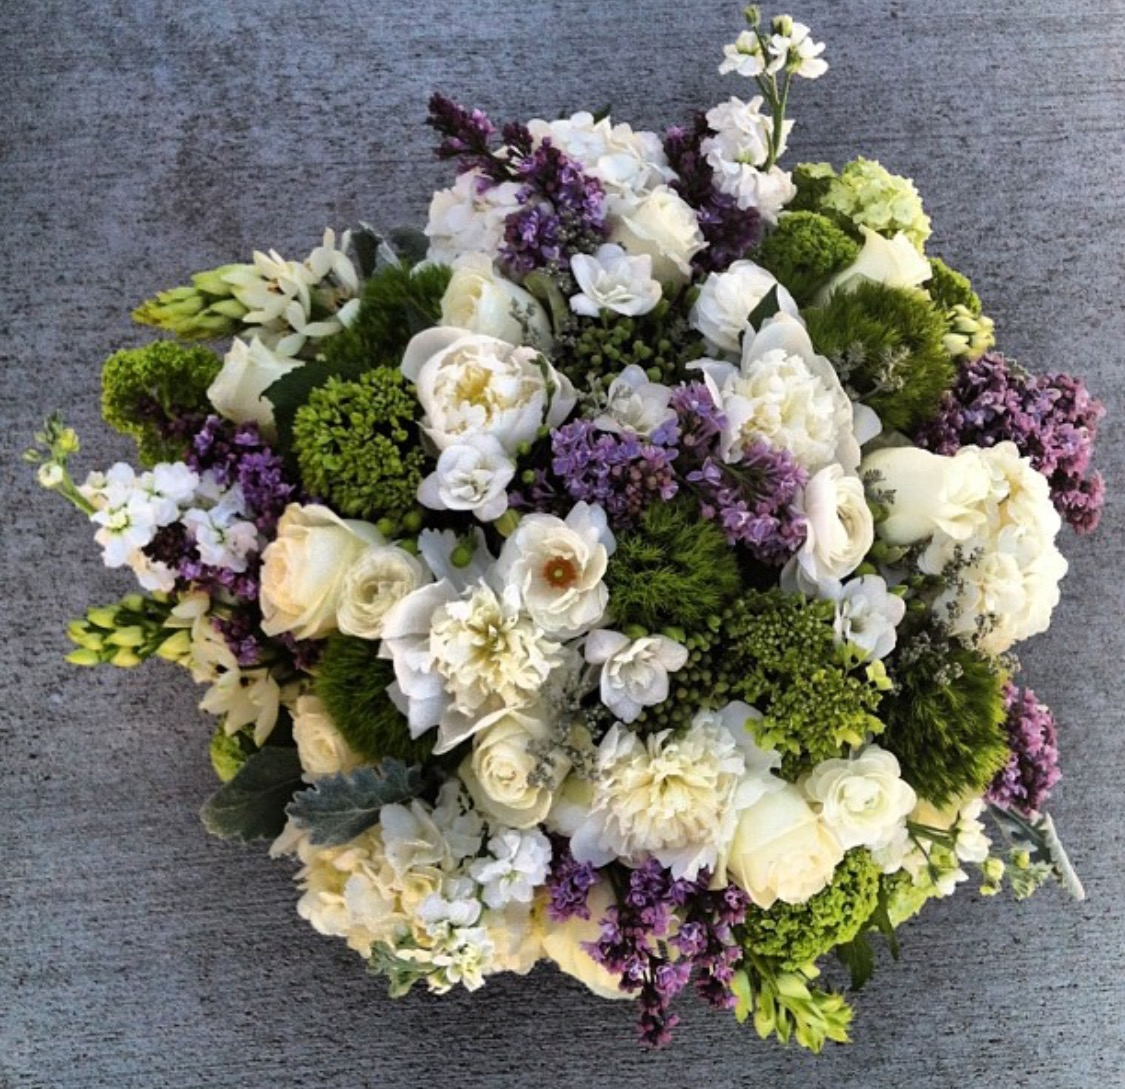 15. Designer Purple and White Centerpiece